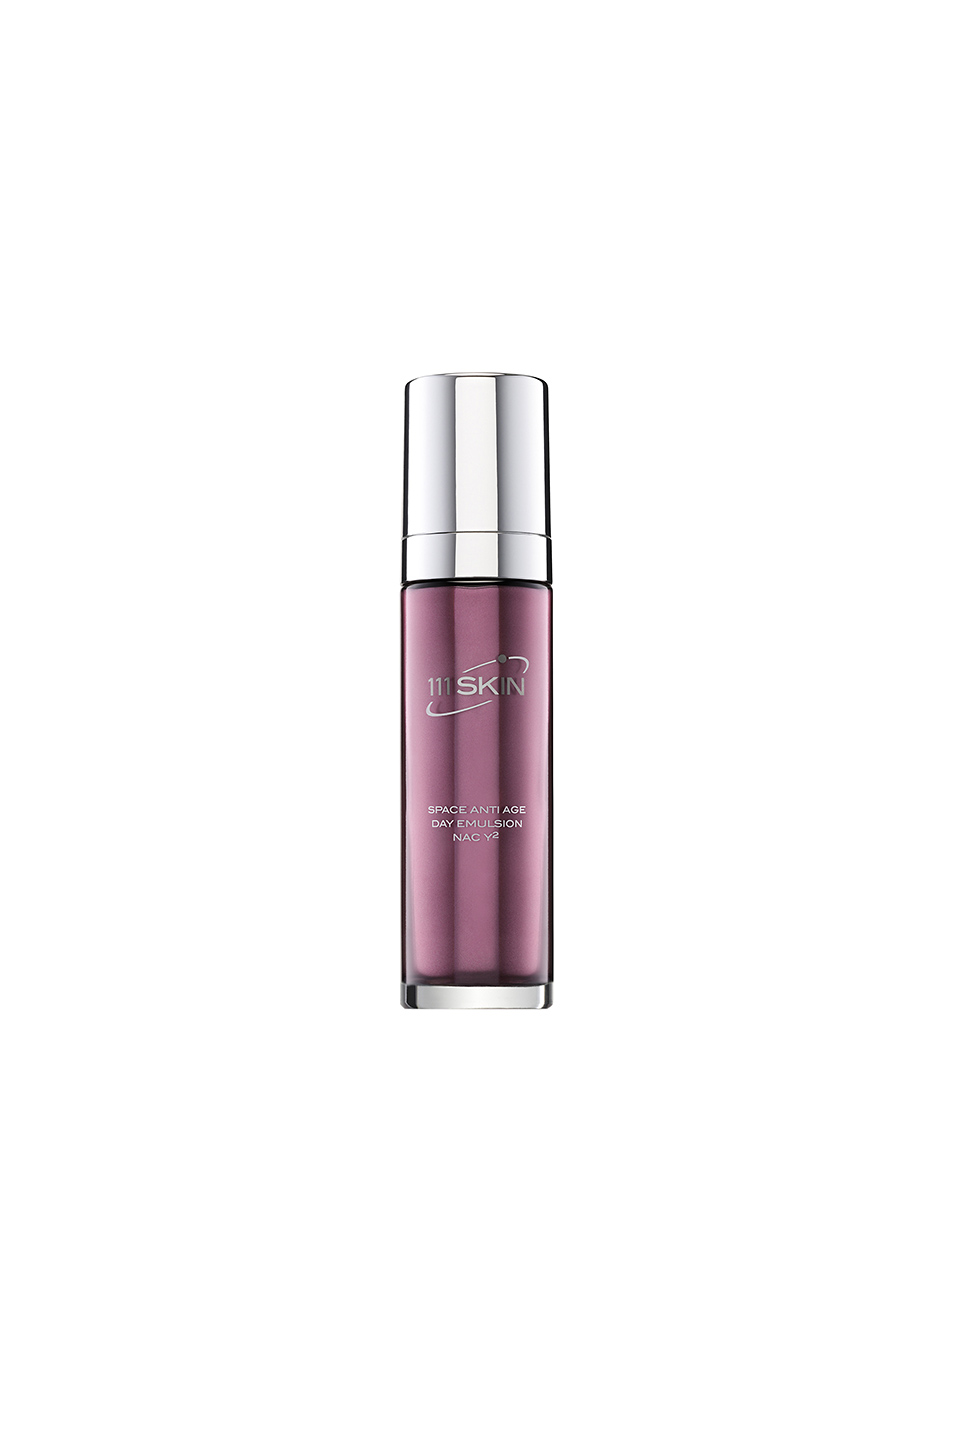 111Skin Space Anti Age Day Emulsion in